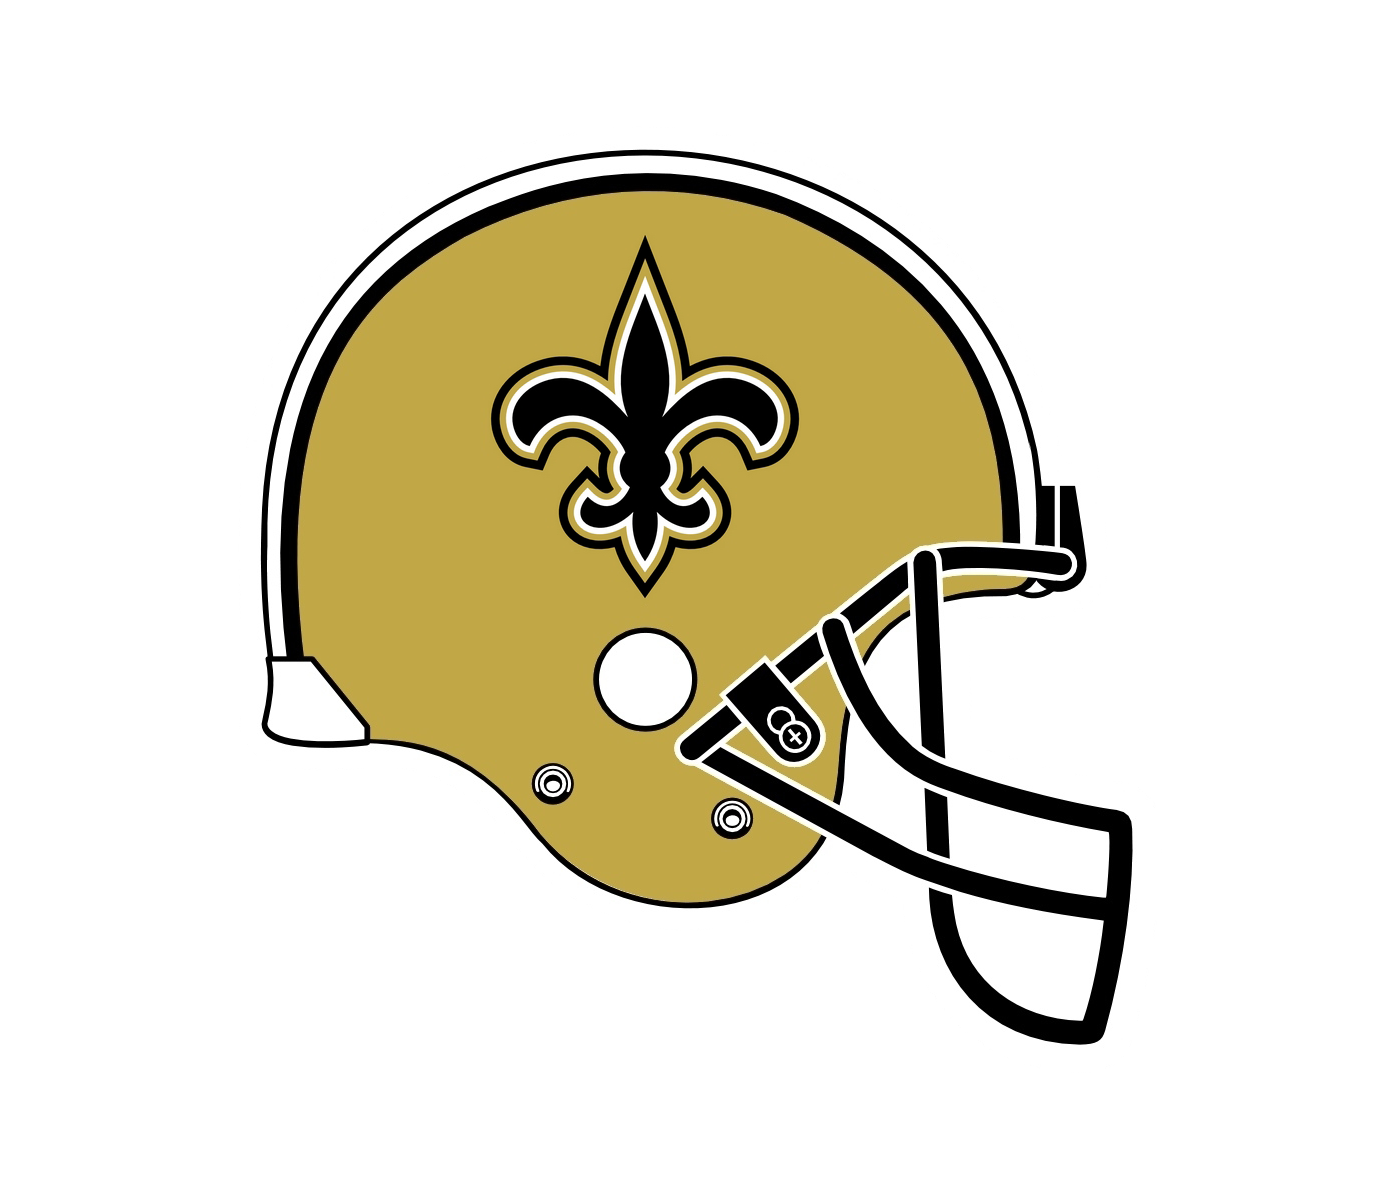 New orleans saints football clipart clip art freeuse stock New Orleans Saints Logo PNG Transparent & SVG Vector - Freebie Supply clip art freeuse stock